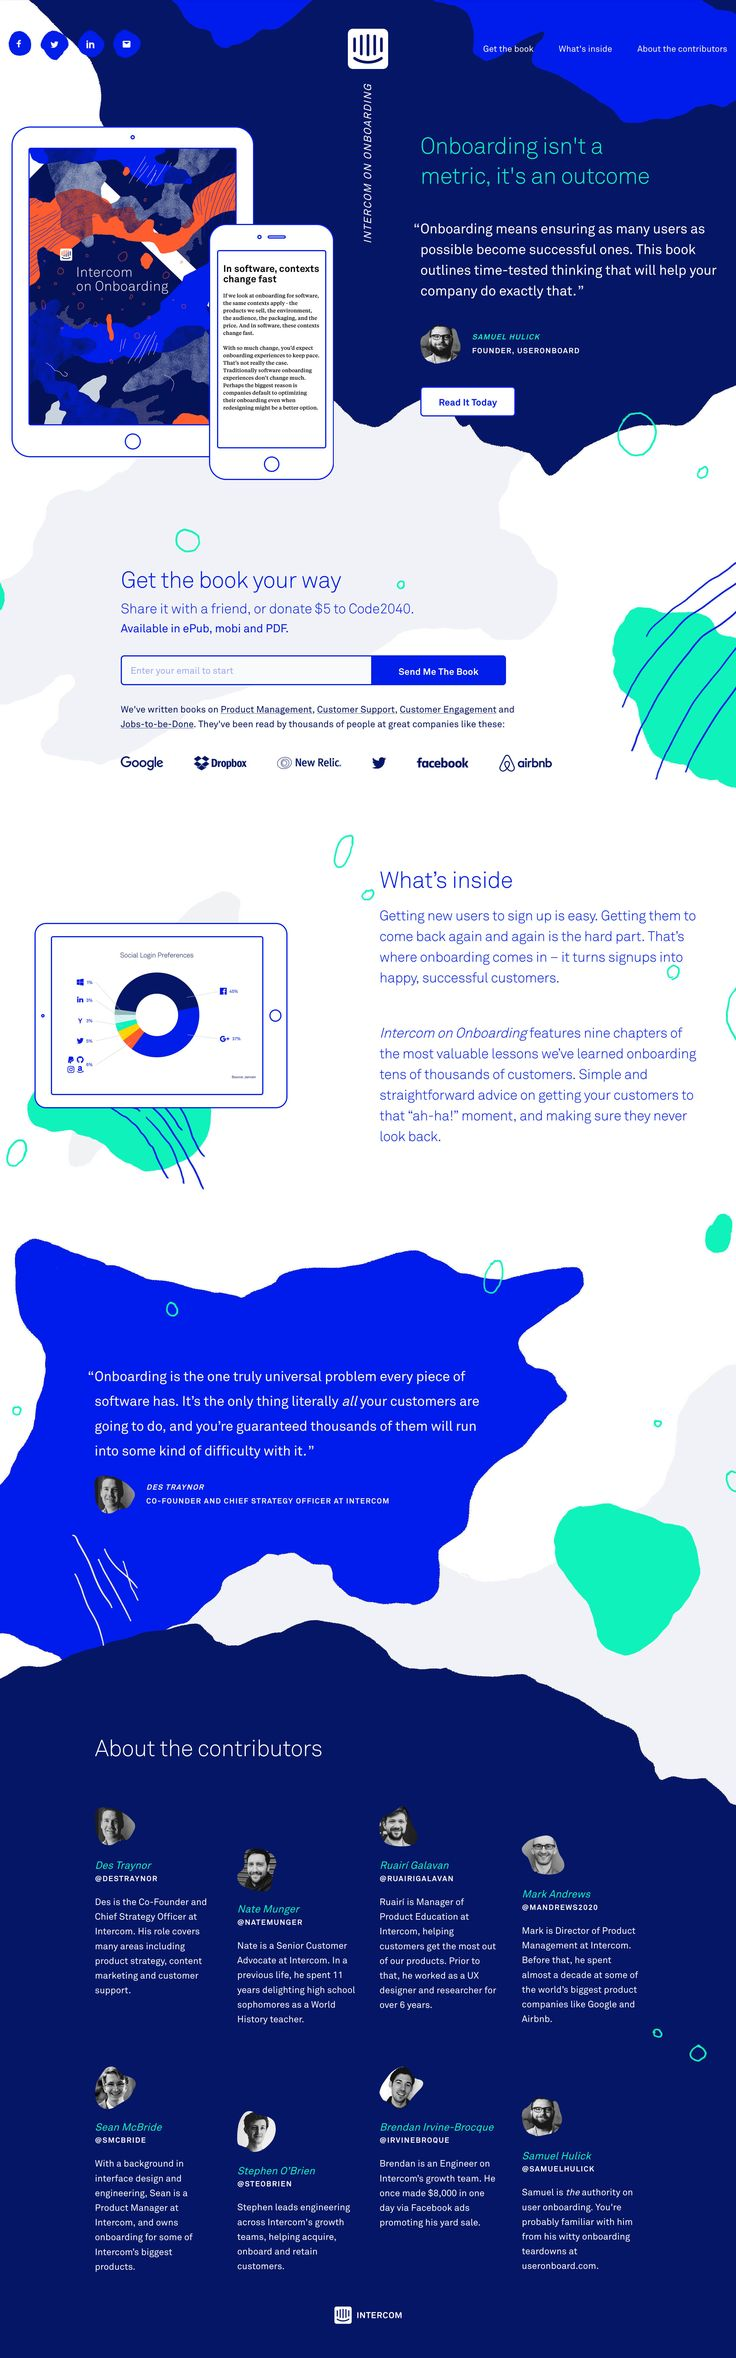 Awesome colorful landing page promoting Intercom's new free ebook on user onboarding.